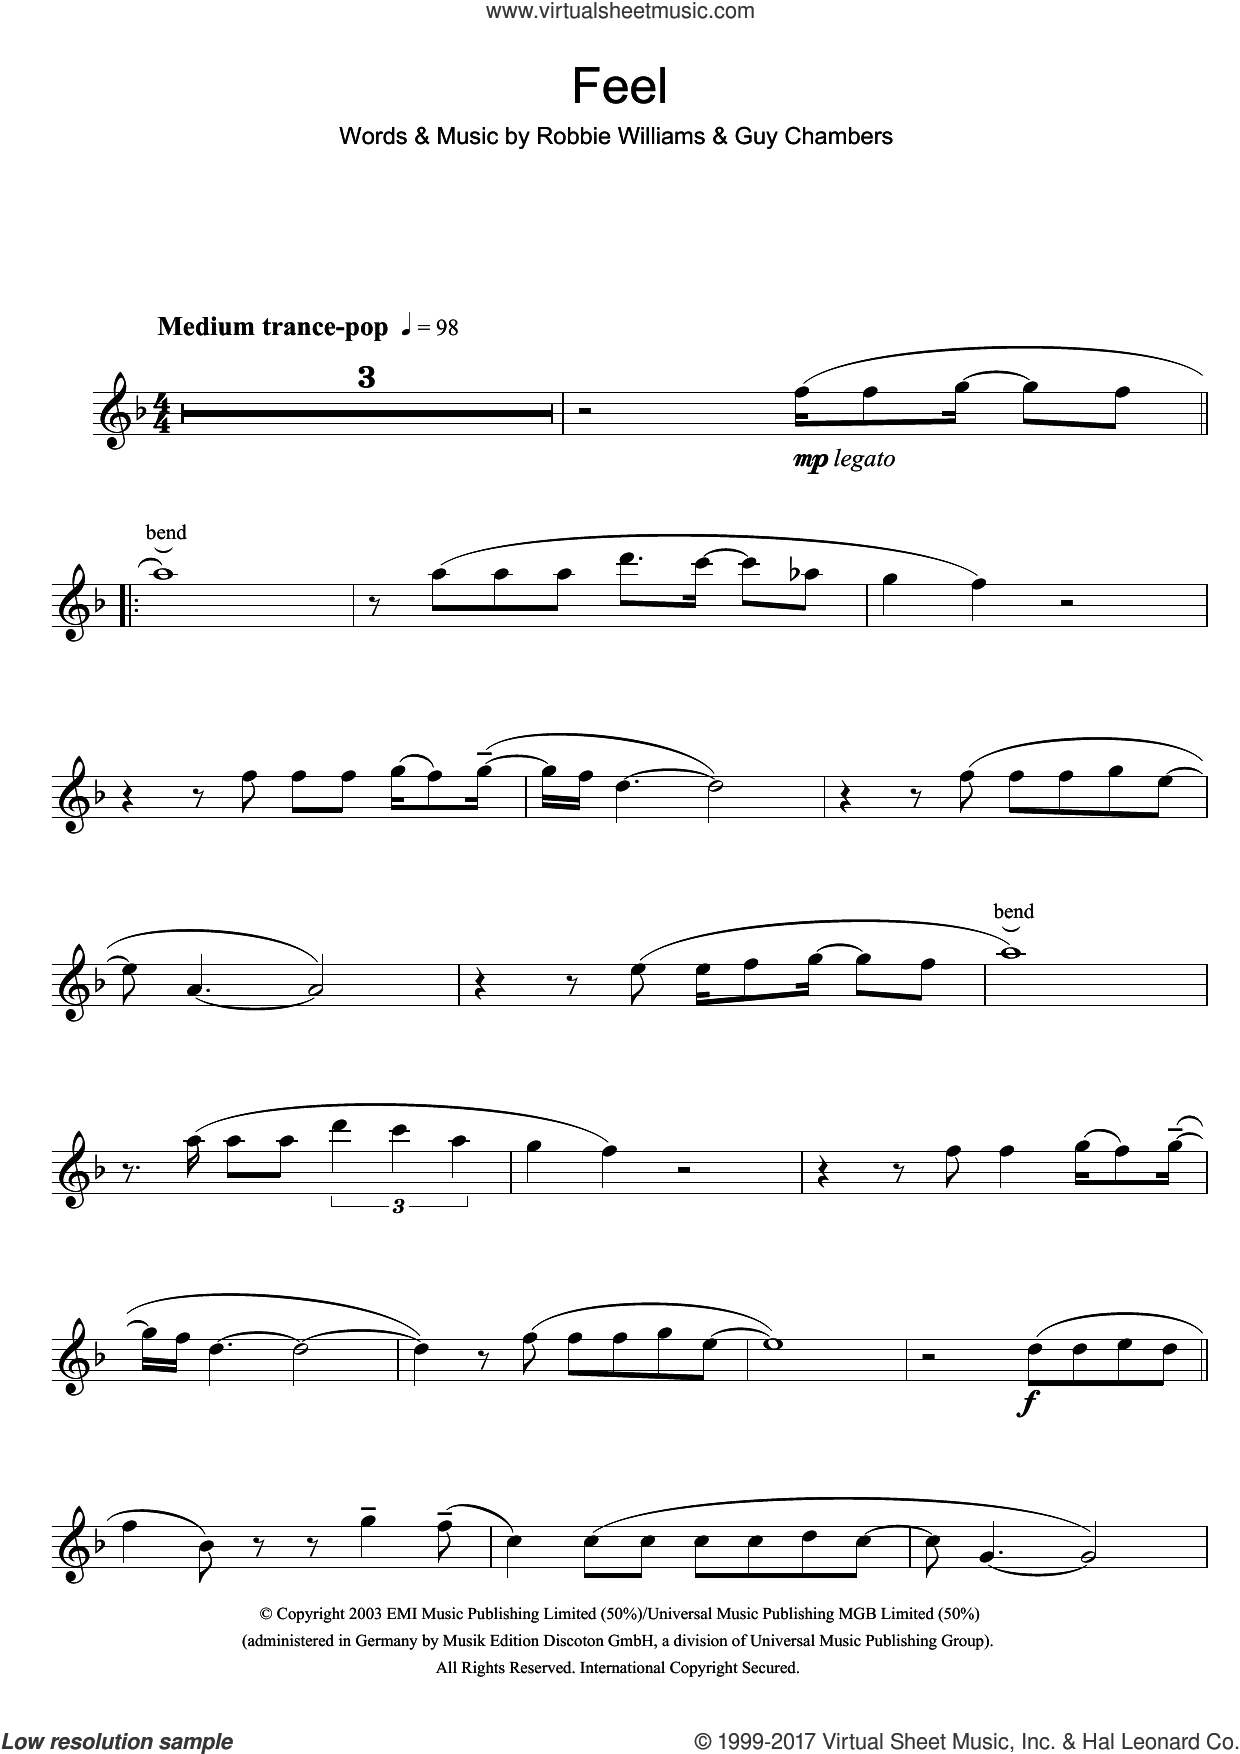 Feel sheet music for flute solo by Robbie Williams and Guy Chambers, intermediate skill level